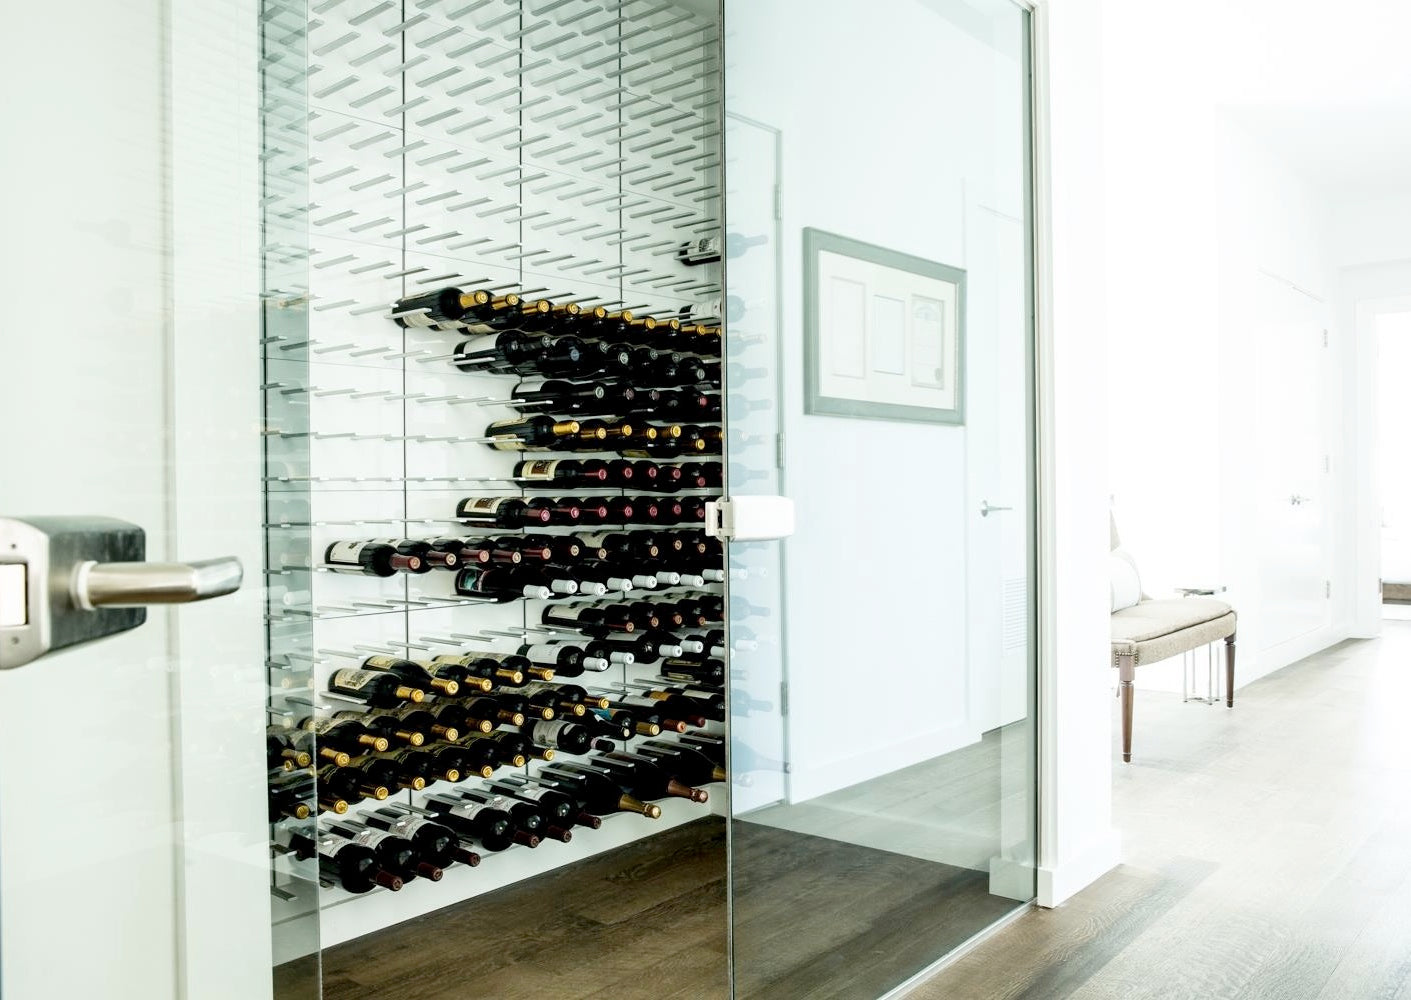 glass-door wine cellar - union street san francisco california